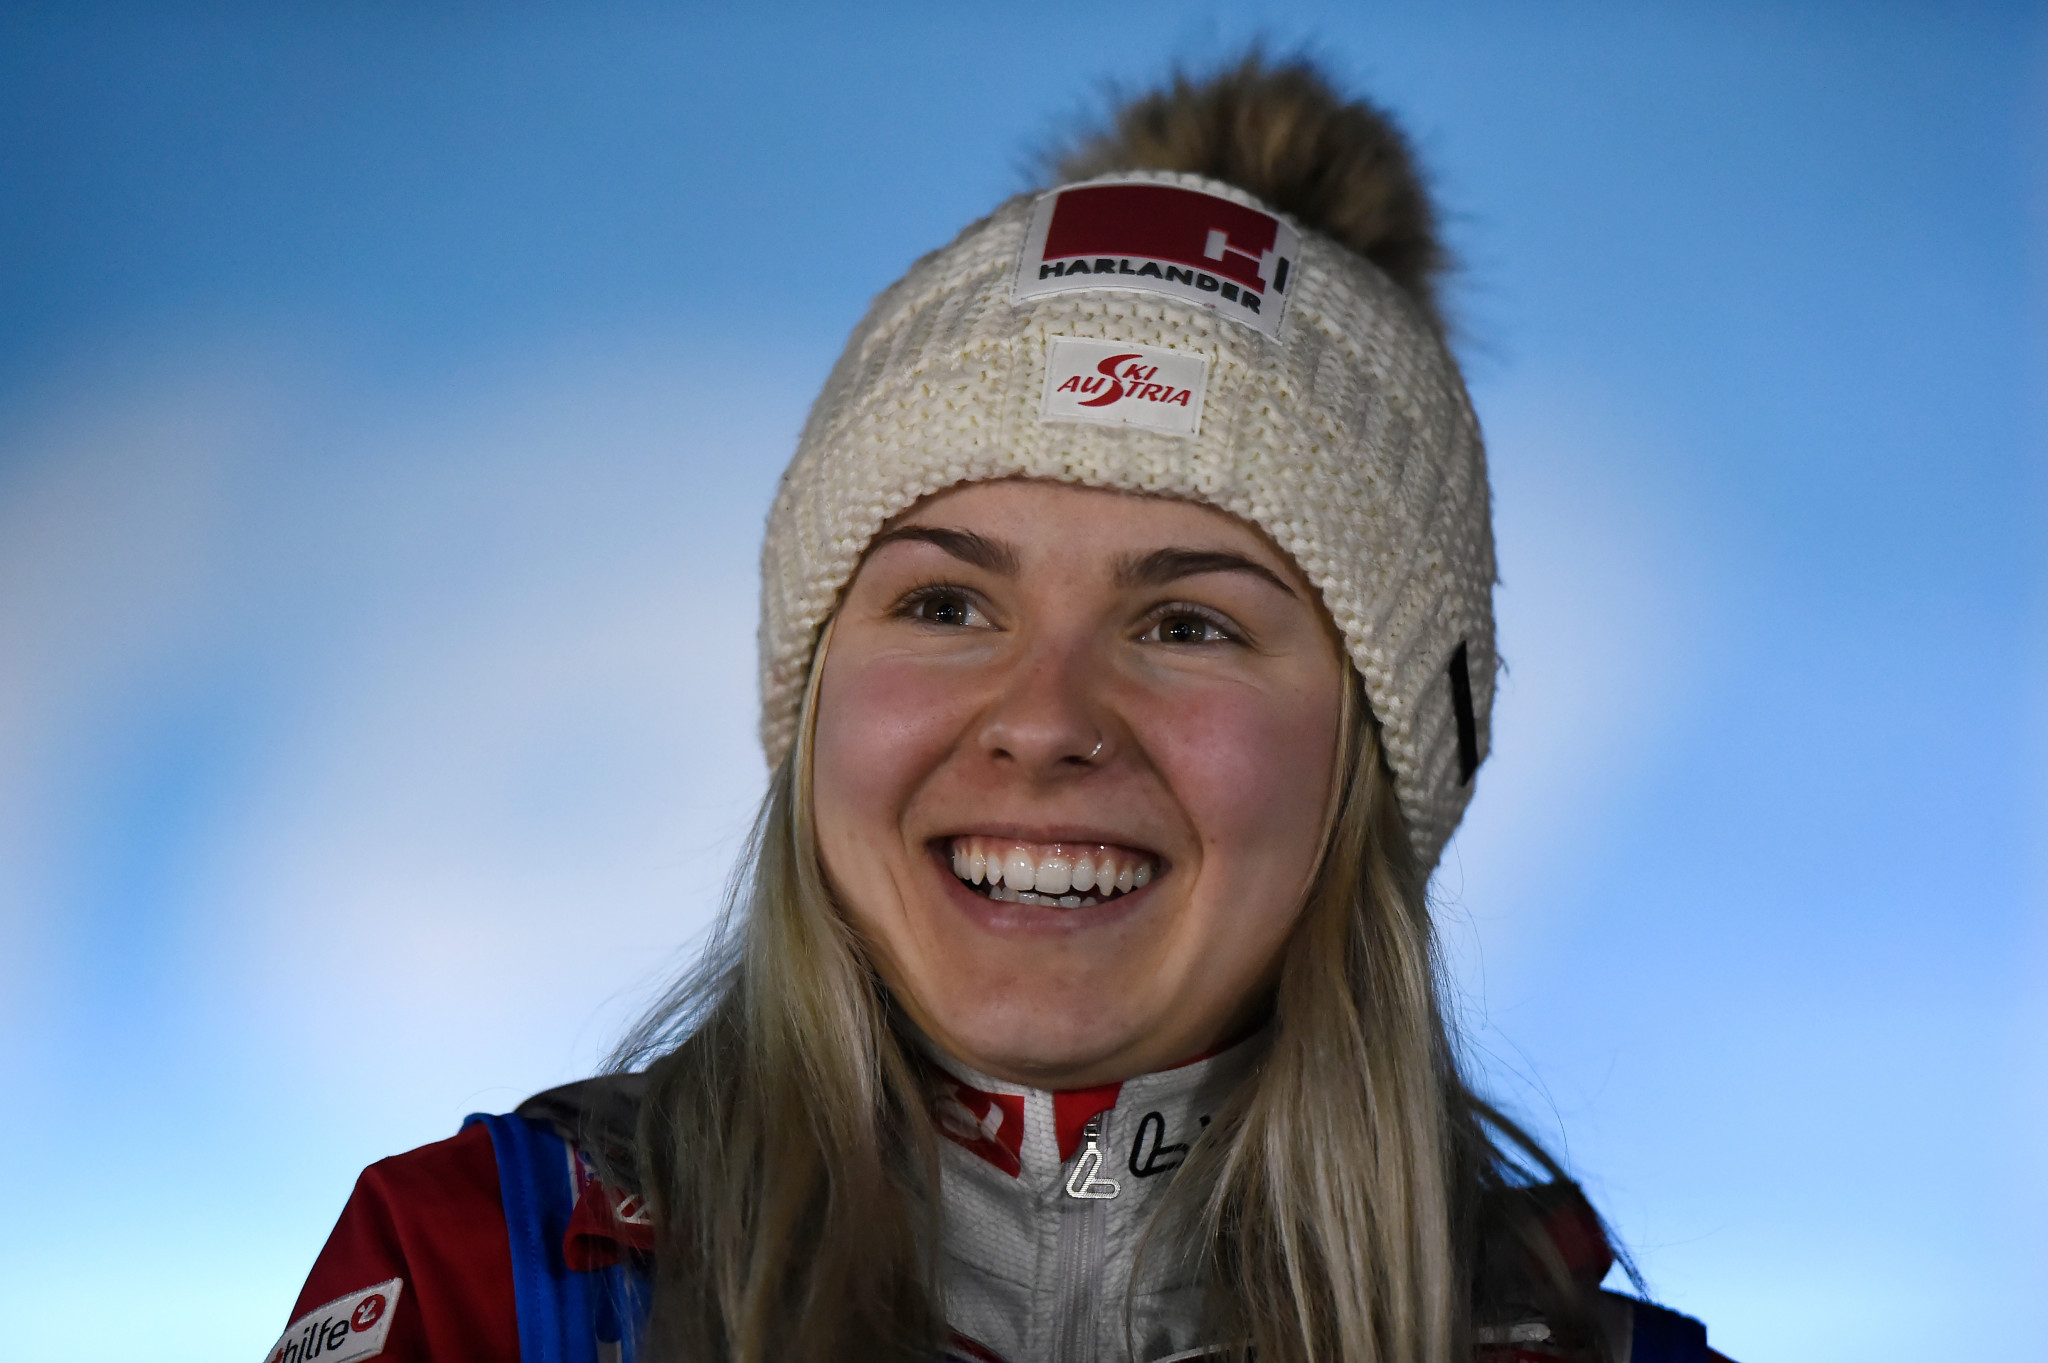 Hölzl to renew rivalry with Lundby at home Ski Jumping World Cup in Hinzenbach